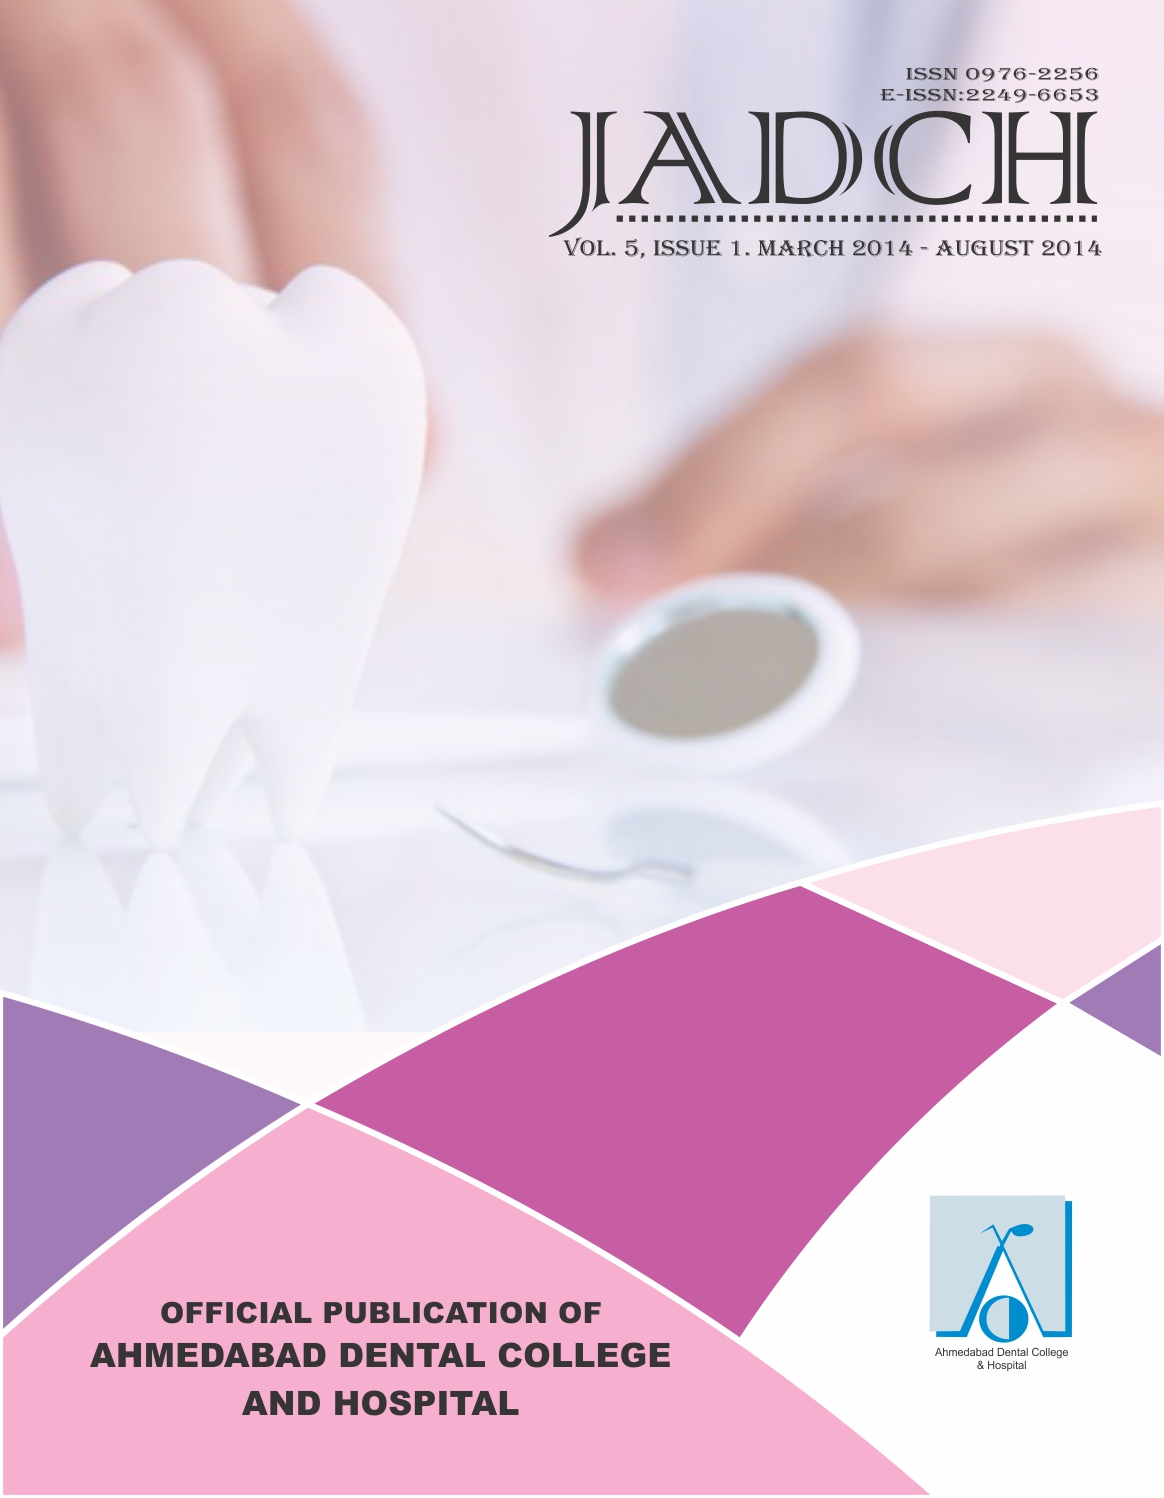 ADCH Journal - Vol 5